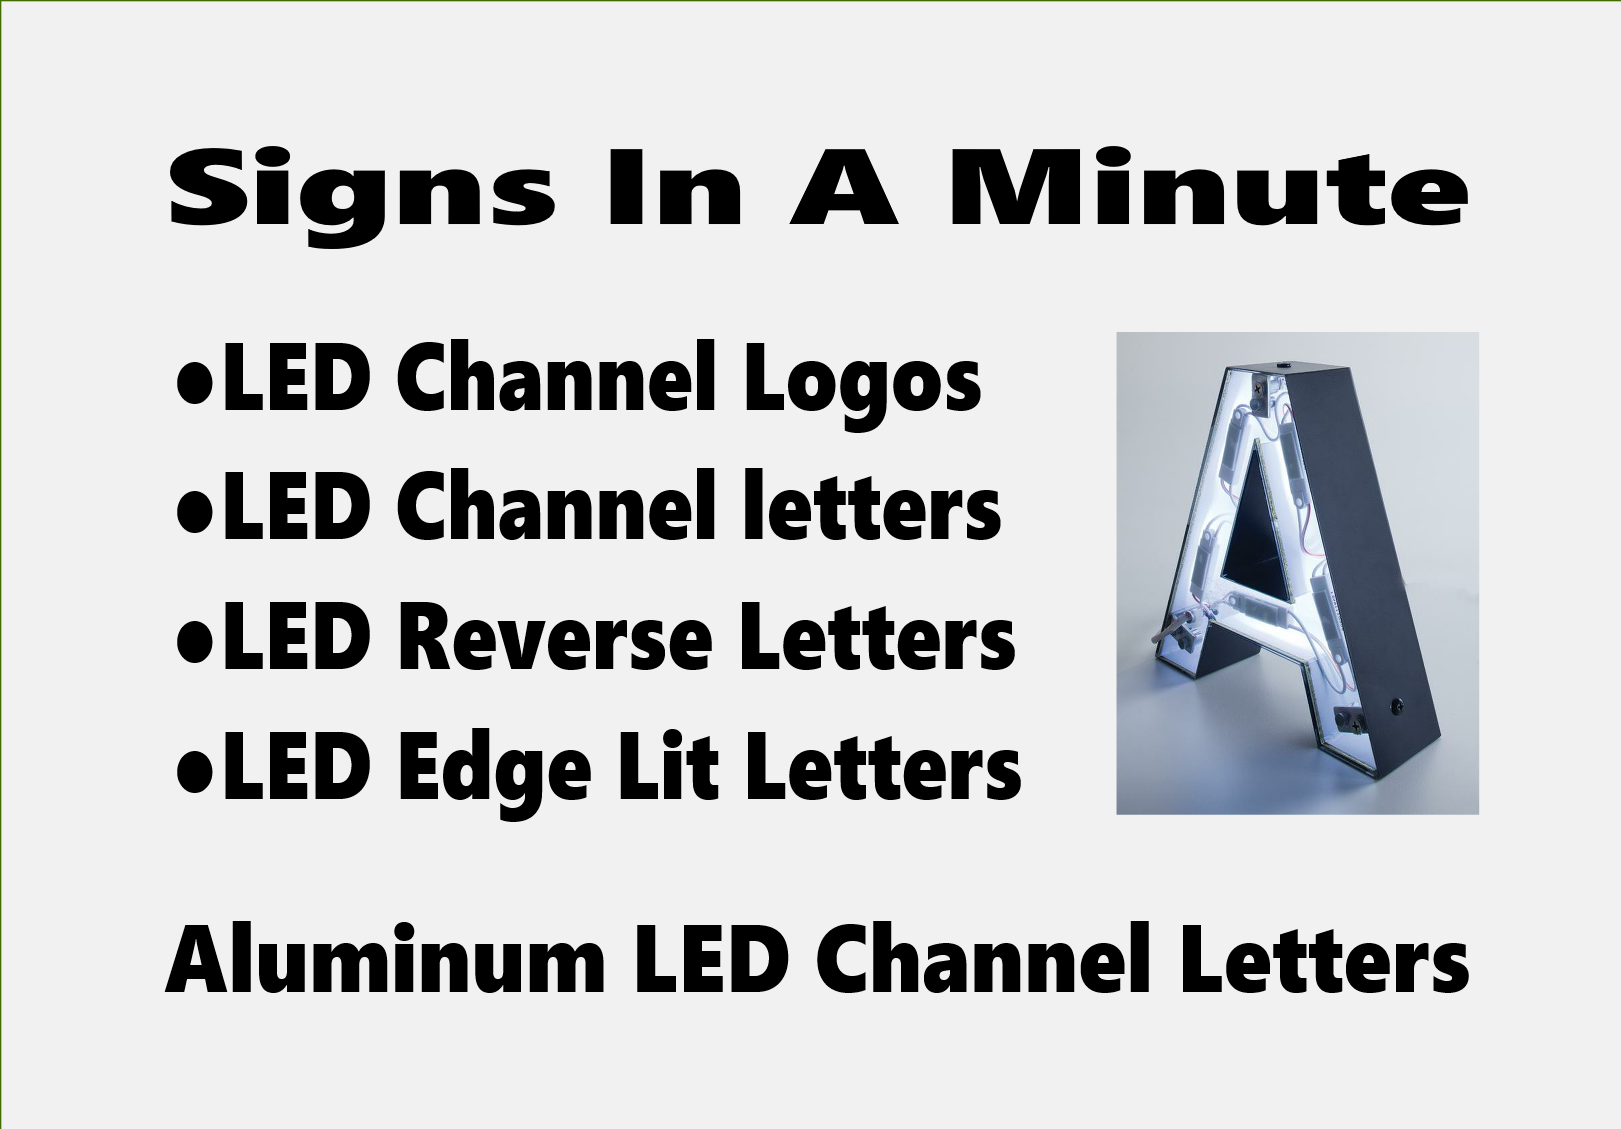 Aluminum LED Channel Letters